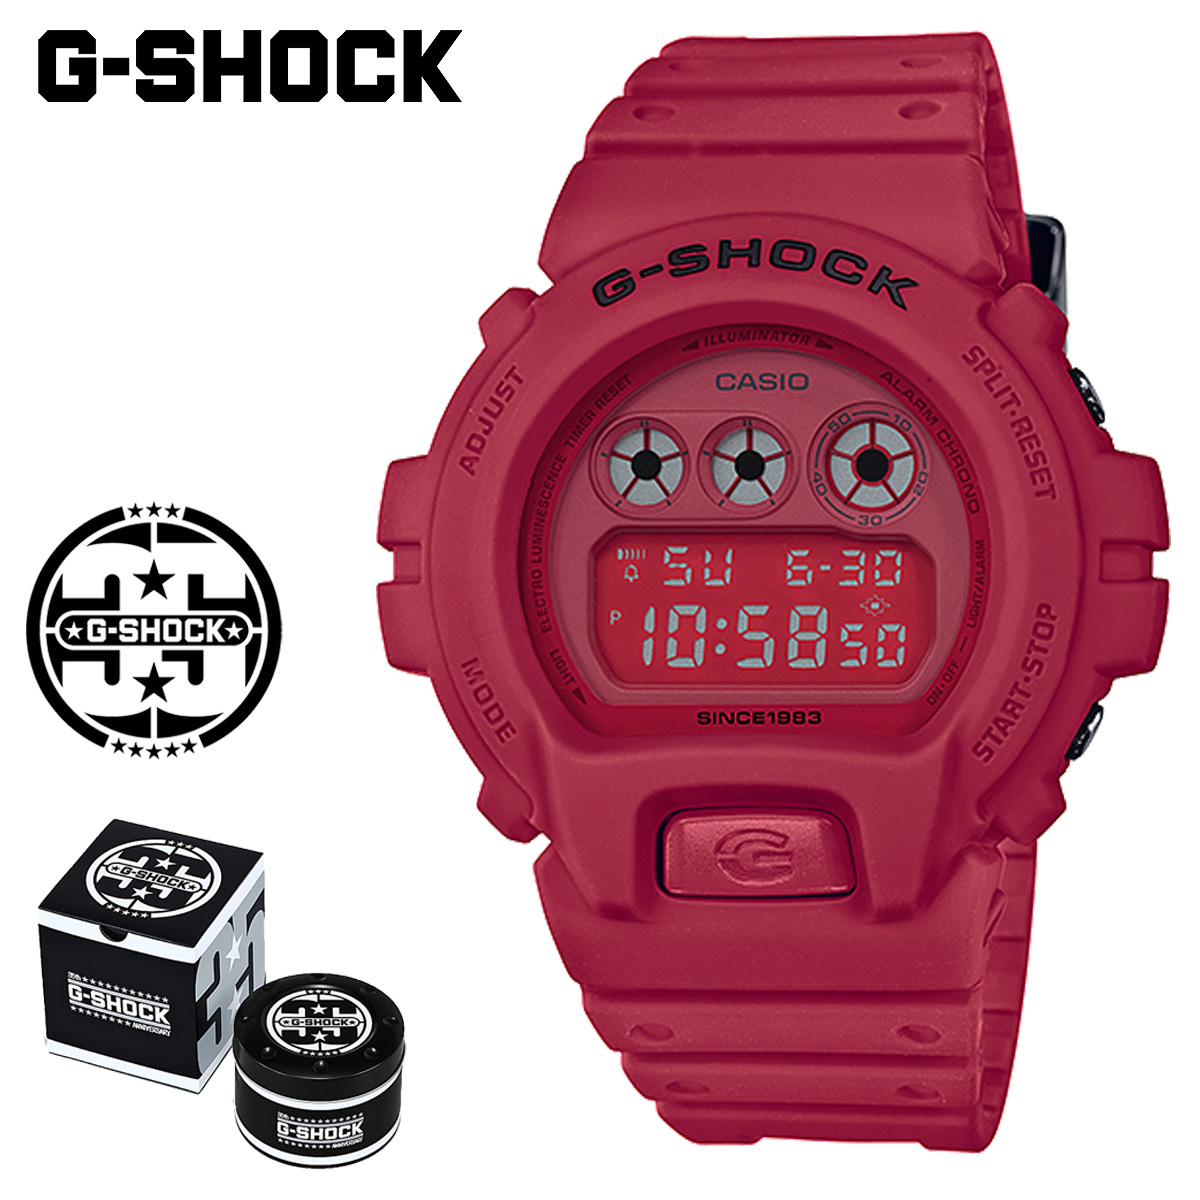 G Shock G Shock G Shock Red Red Men Gap Dis Of The 35th Anniversary Of Casio Casio G Shock Watch Dw 6935c 4jr Red Out